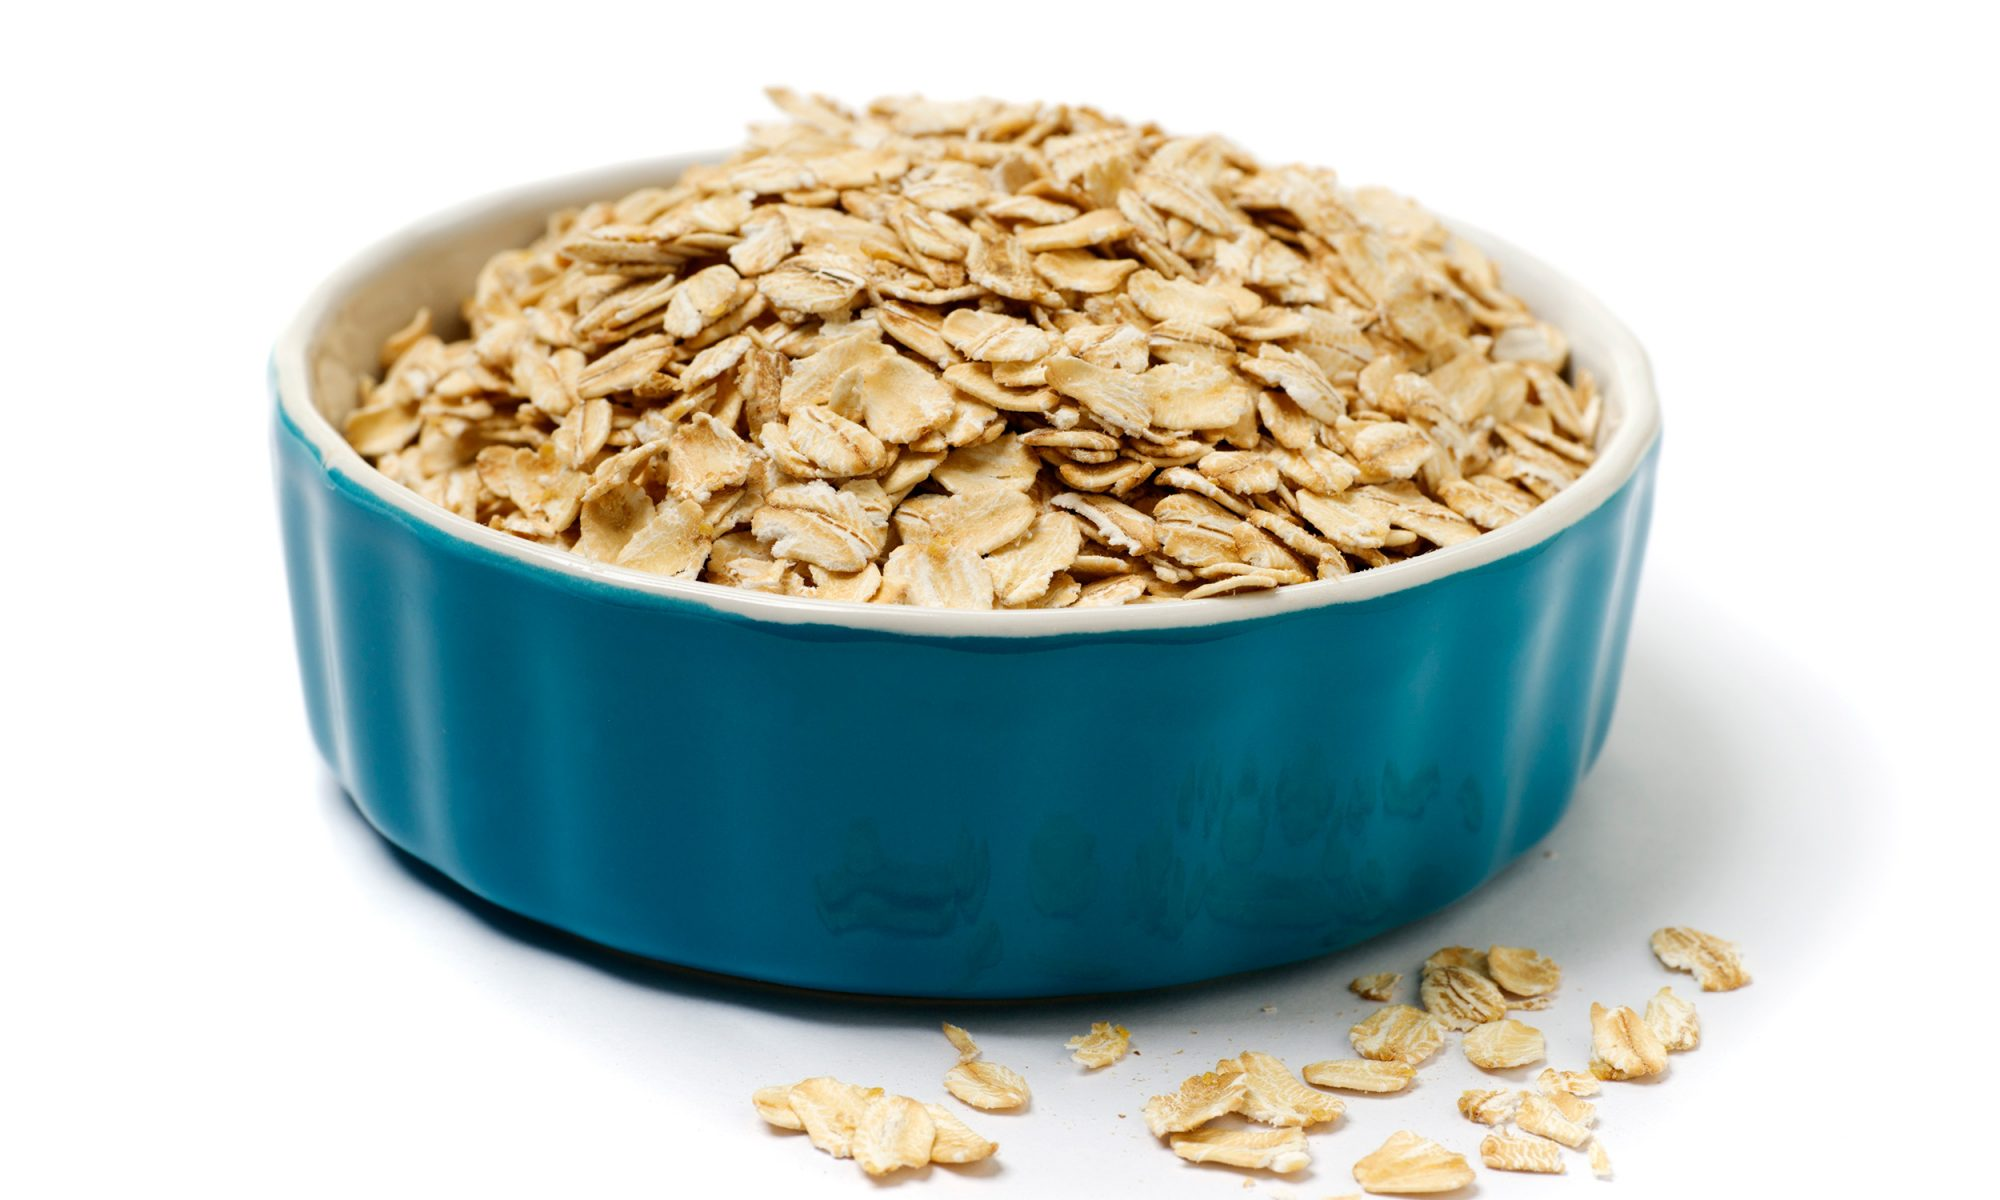 EC: What's the Difference Between Types of Oatmeal?